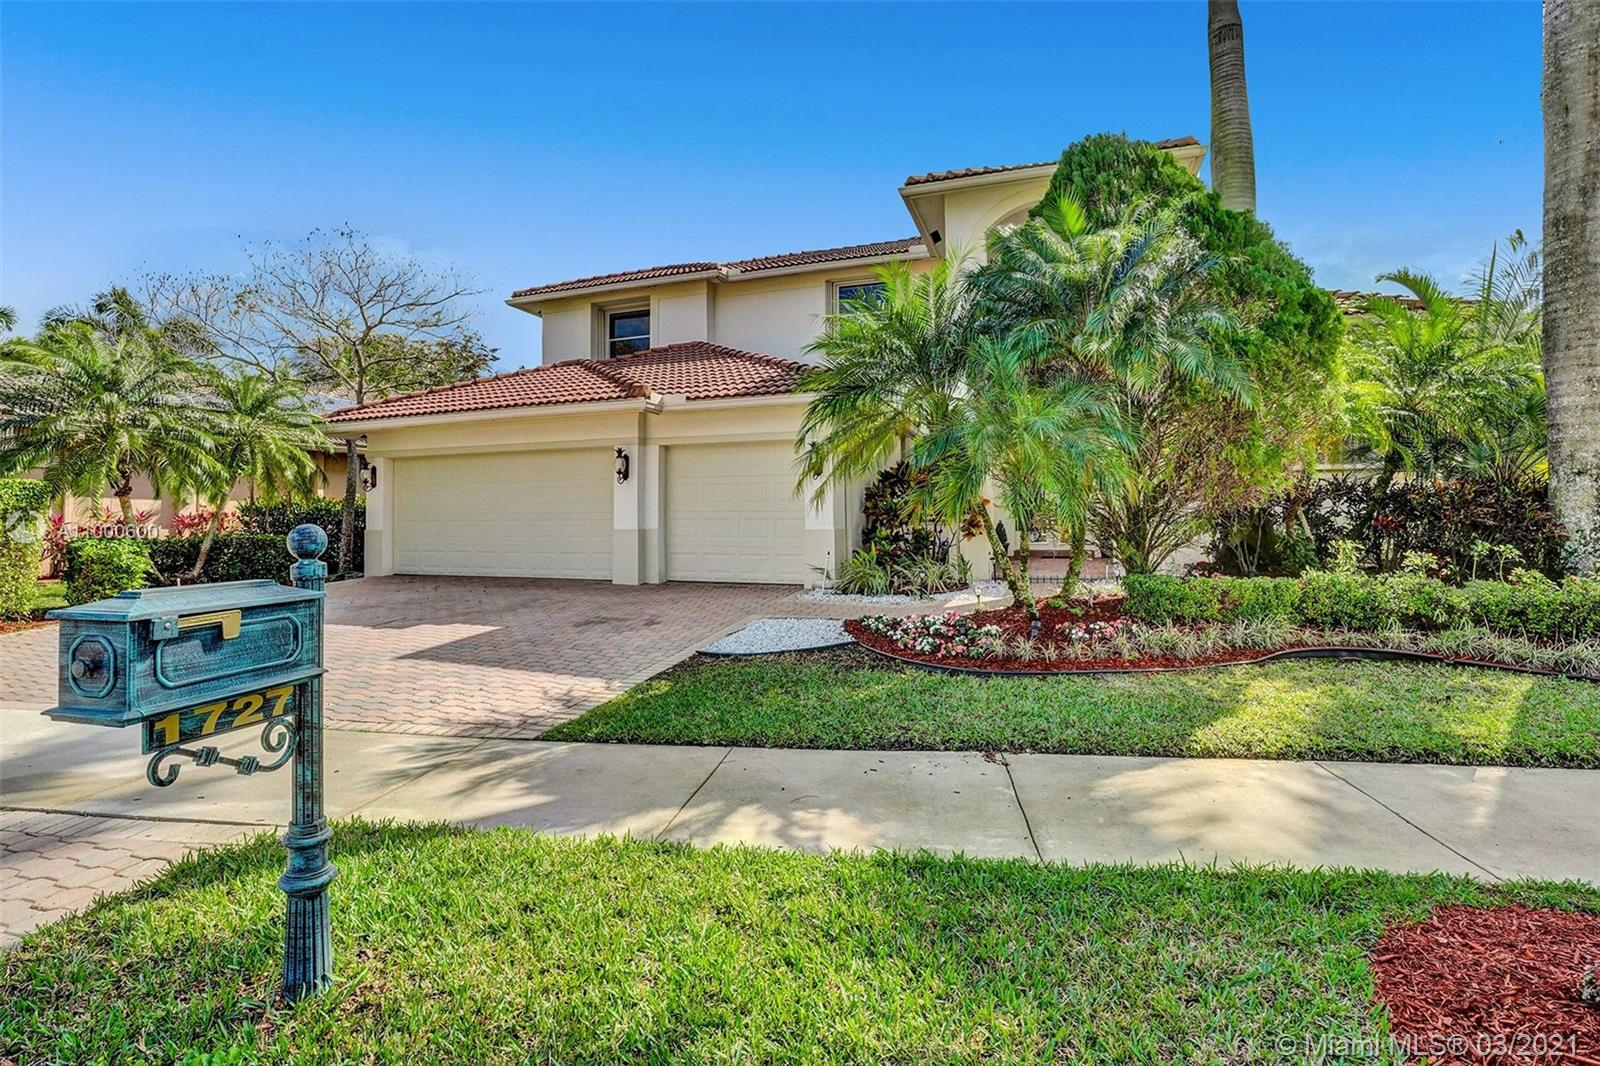 Tucked in the gated community of Victoria Pointe at Weston Hills Country Club. Spacious Denton model with the finest of upgrades. Enter this grand home with gleaming marble flooring with a 2 story living room, private office with windows on the pool and patio. Master bedroom suite on the first floor with soaring ceilings, custom draperies, bamboo wood flooring, and new black-out electric shades. A luxurious bath, oversized dual shower, and dual sinks. State of the art Wolf in the woods kitchen (2011) fit for a chef with an oversized island with double granite countertops, two pantries in kitchen, one walk-in, and top-of-the-line Bosch appliances. Enjoy a dual staircase to the second level with gorgeous wrought iron railings with wood stairs. Four spacious bedrooms upstairs plus a loft